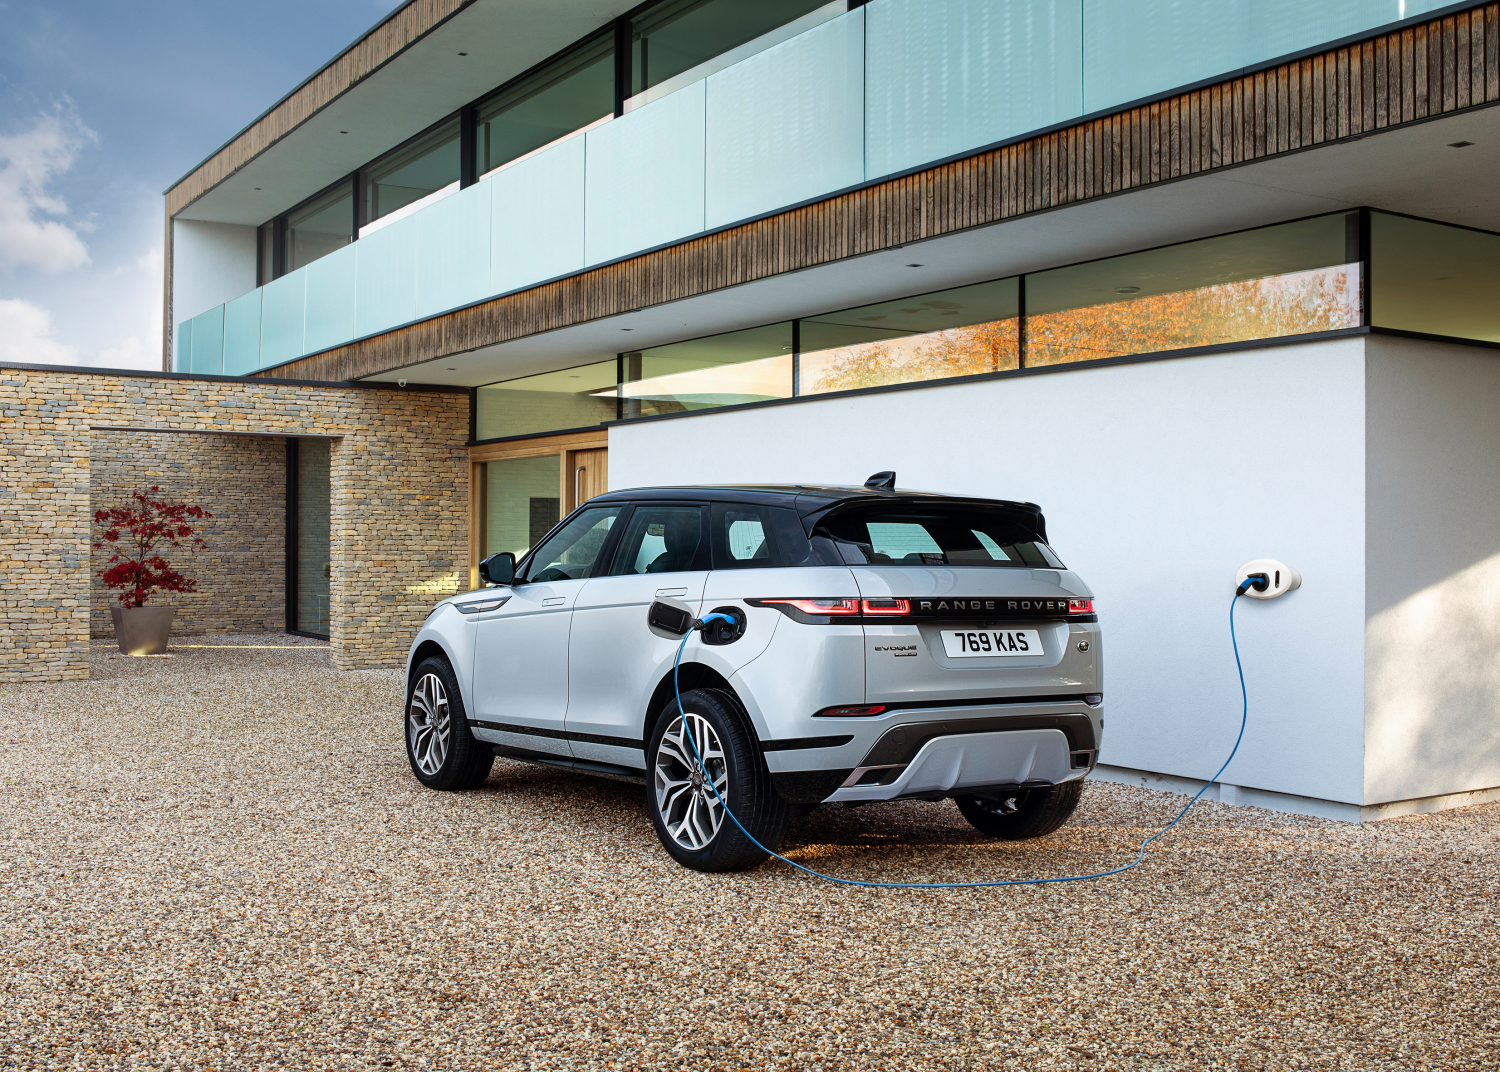 Bestselling Evoque and Discovery Sport Suvs now Available as Plug-in Hybrids with All-electric Range of up to 66km - Image 2